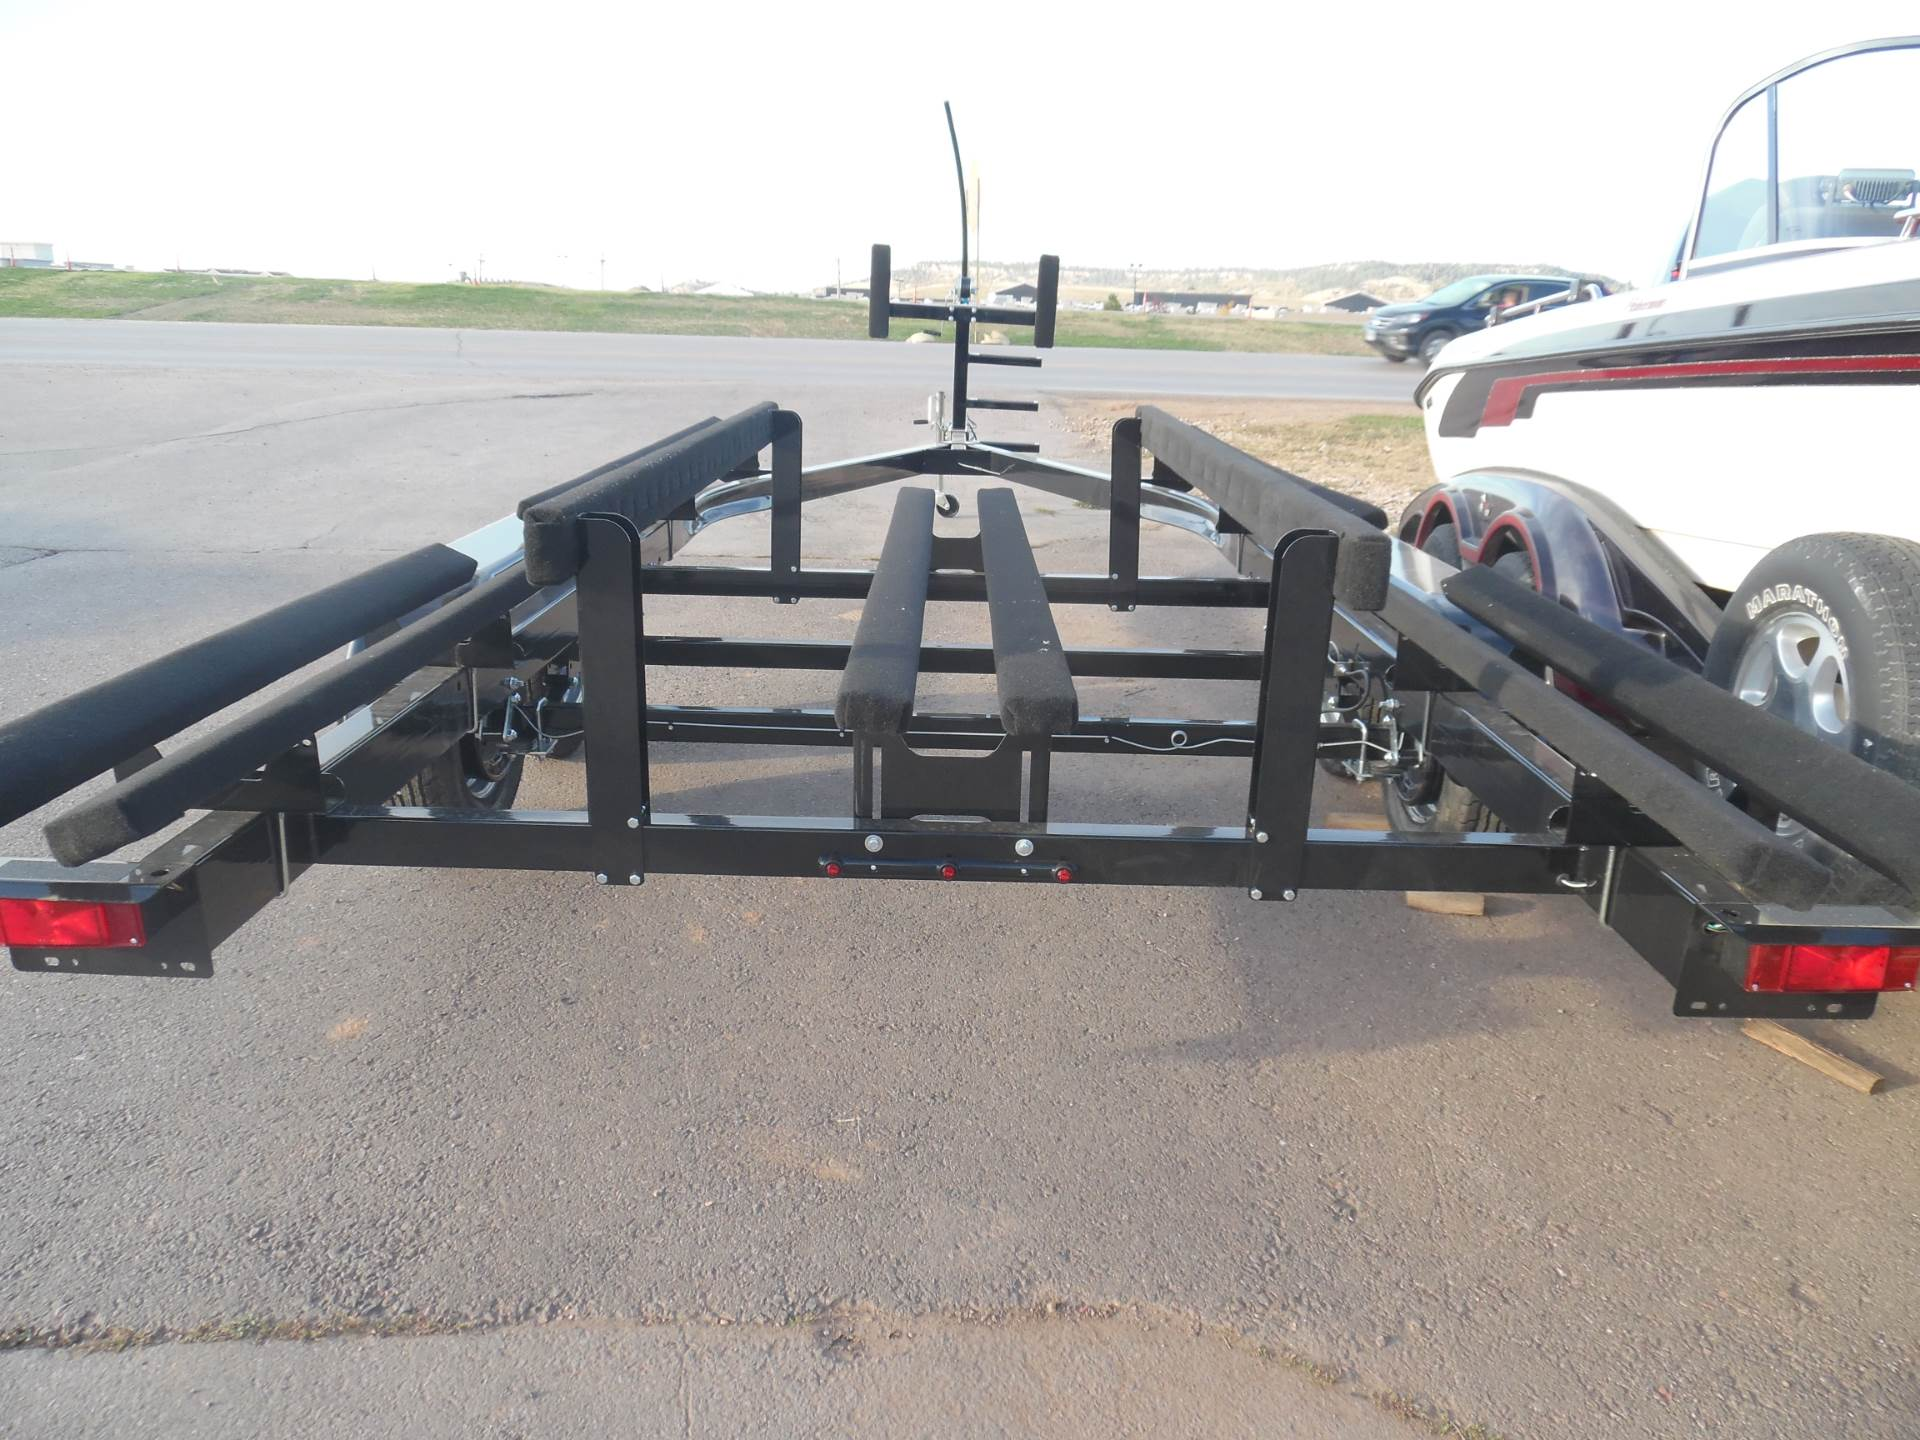 1900 Yacht Club Tandem Axle Pontoon Trailers for 18'-28' pontoons and tri-toons- in stock! in Spearfish, South Dakota - Photo 5